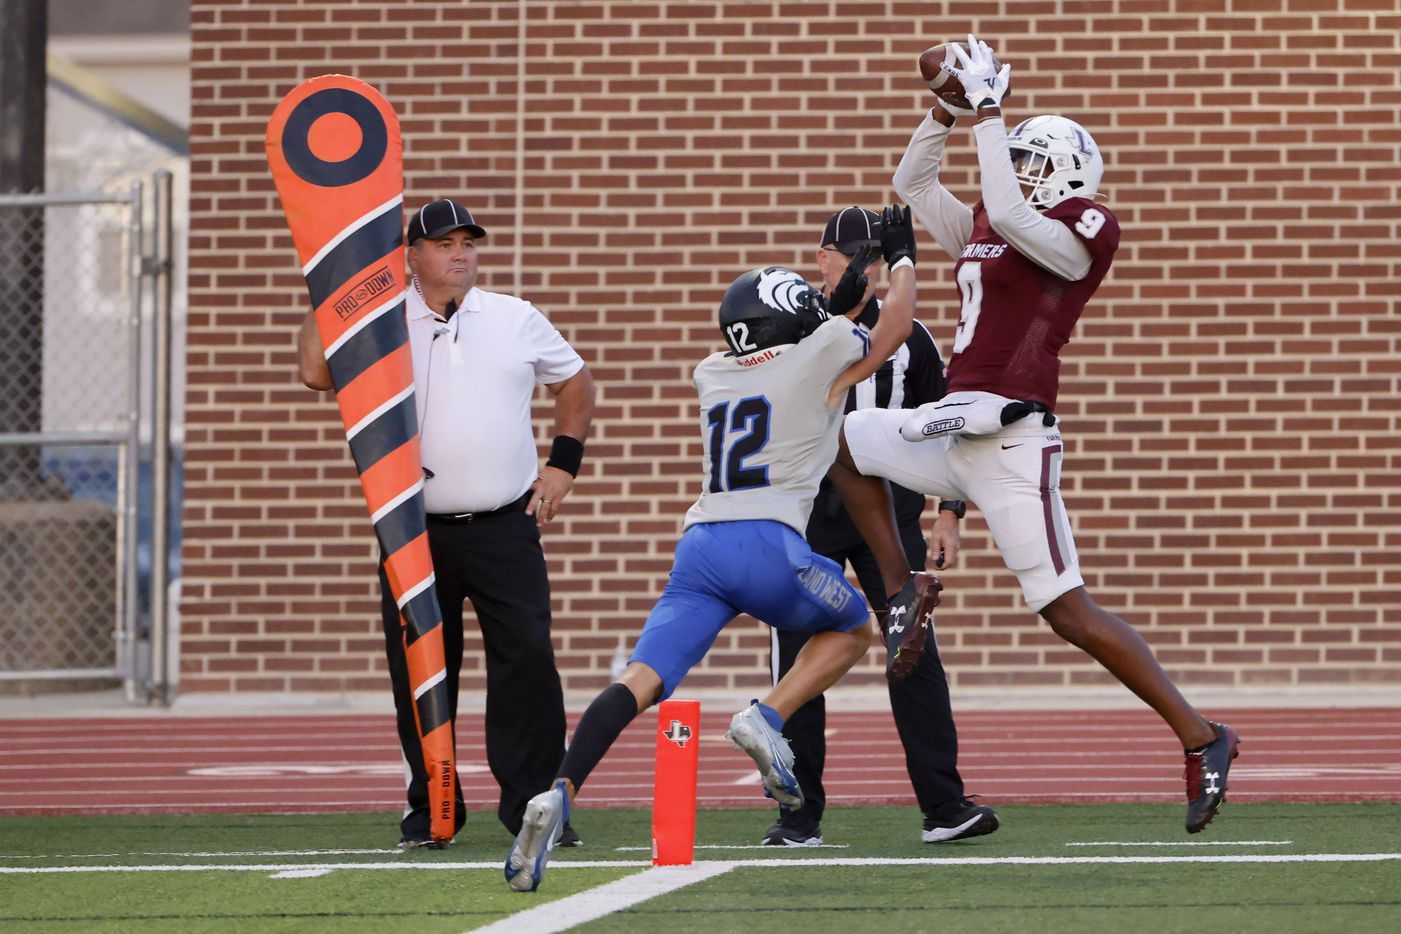 Lewisville receiver Armani Winfield (9) catches a touchdown in front of Plano West defender Donovan Martin (12) during the first half of a high school football game in Lewisville, Texas on Friday, Sept. 24, 2021. (Michael Ainsworth/Special Contributor)